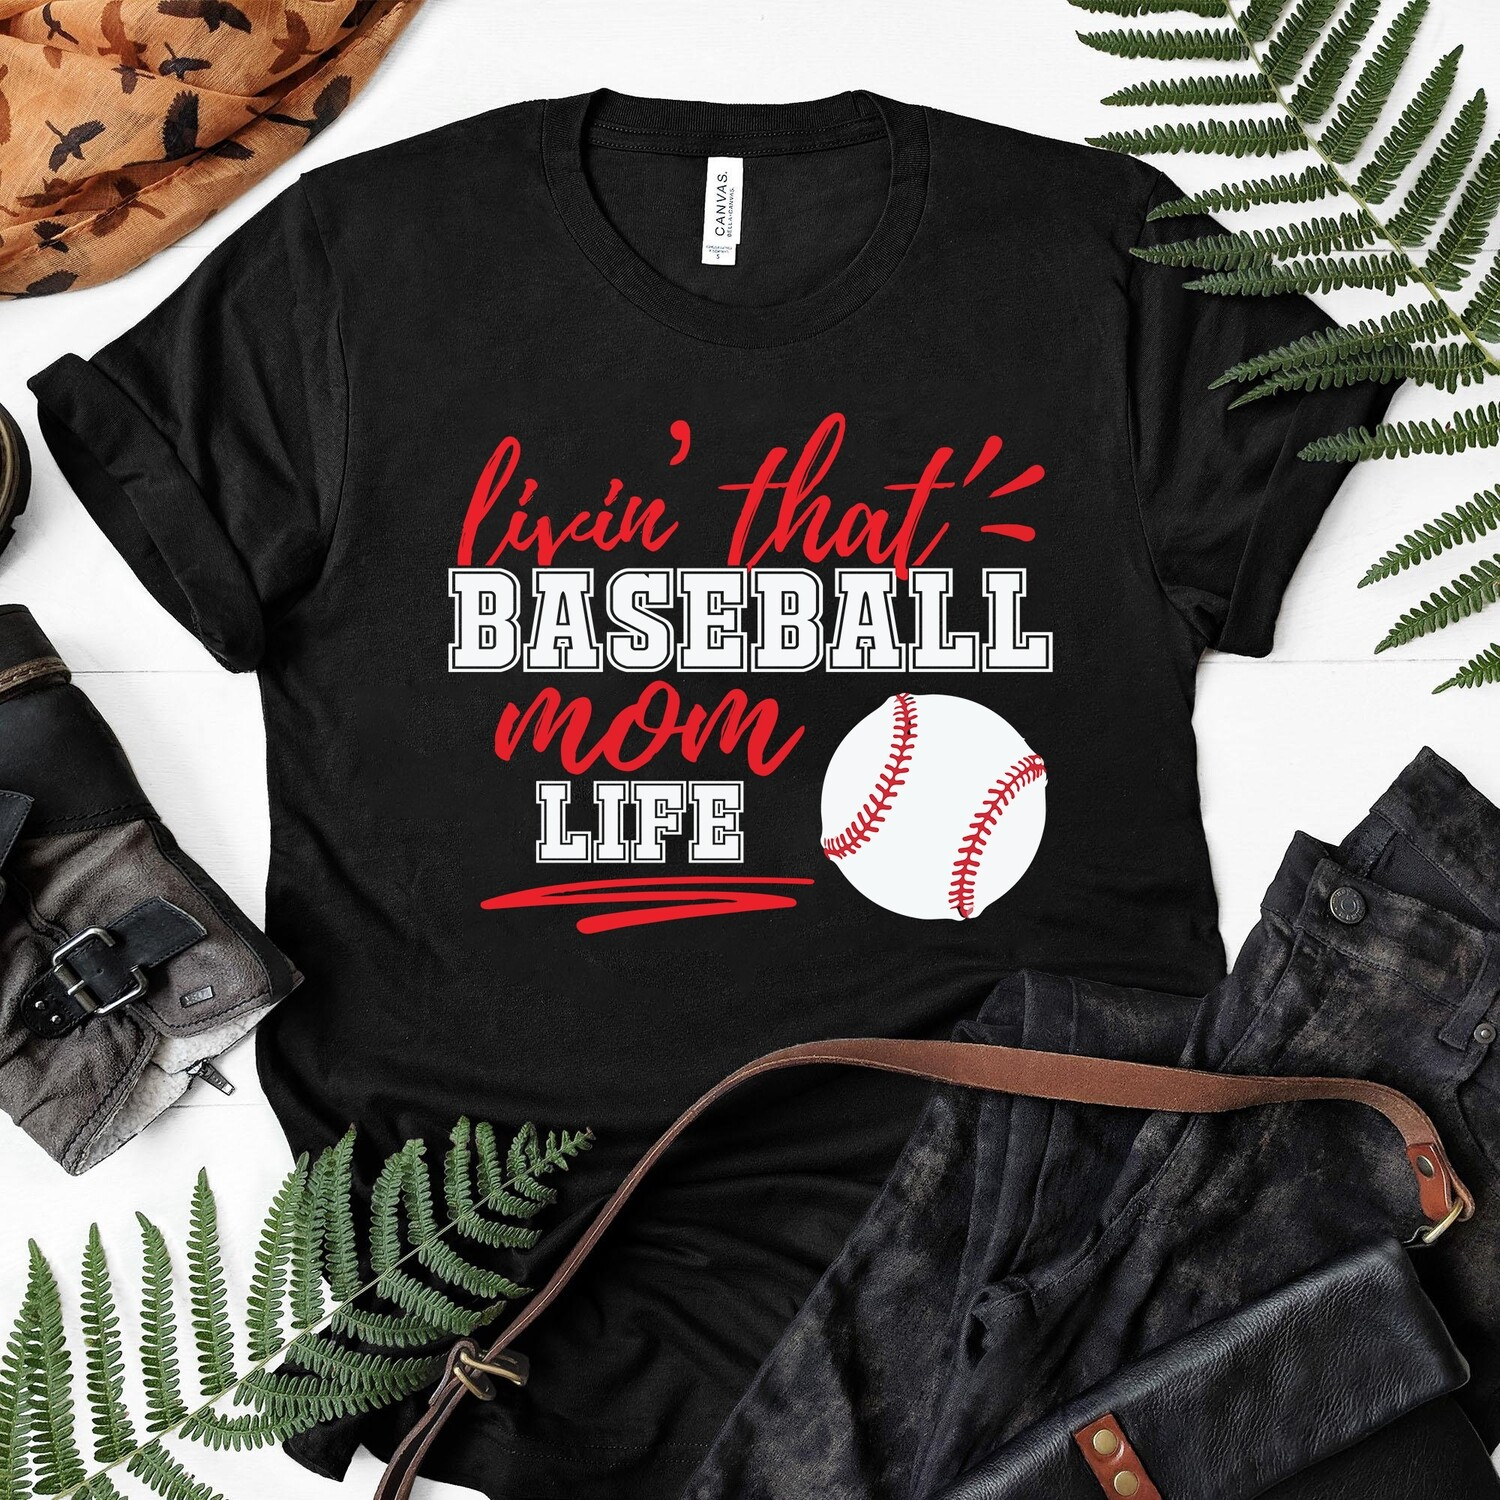 Livin the Baseball mom life Tshirt, Baseball Mom Shirt, Love Baseball Tshirt, Womens Sports shirt, Baseball Spirit Shirt